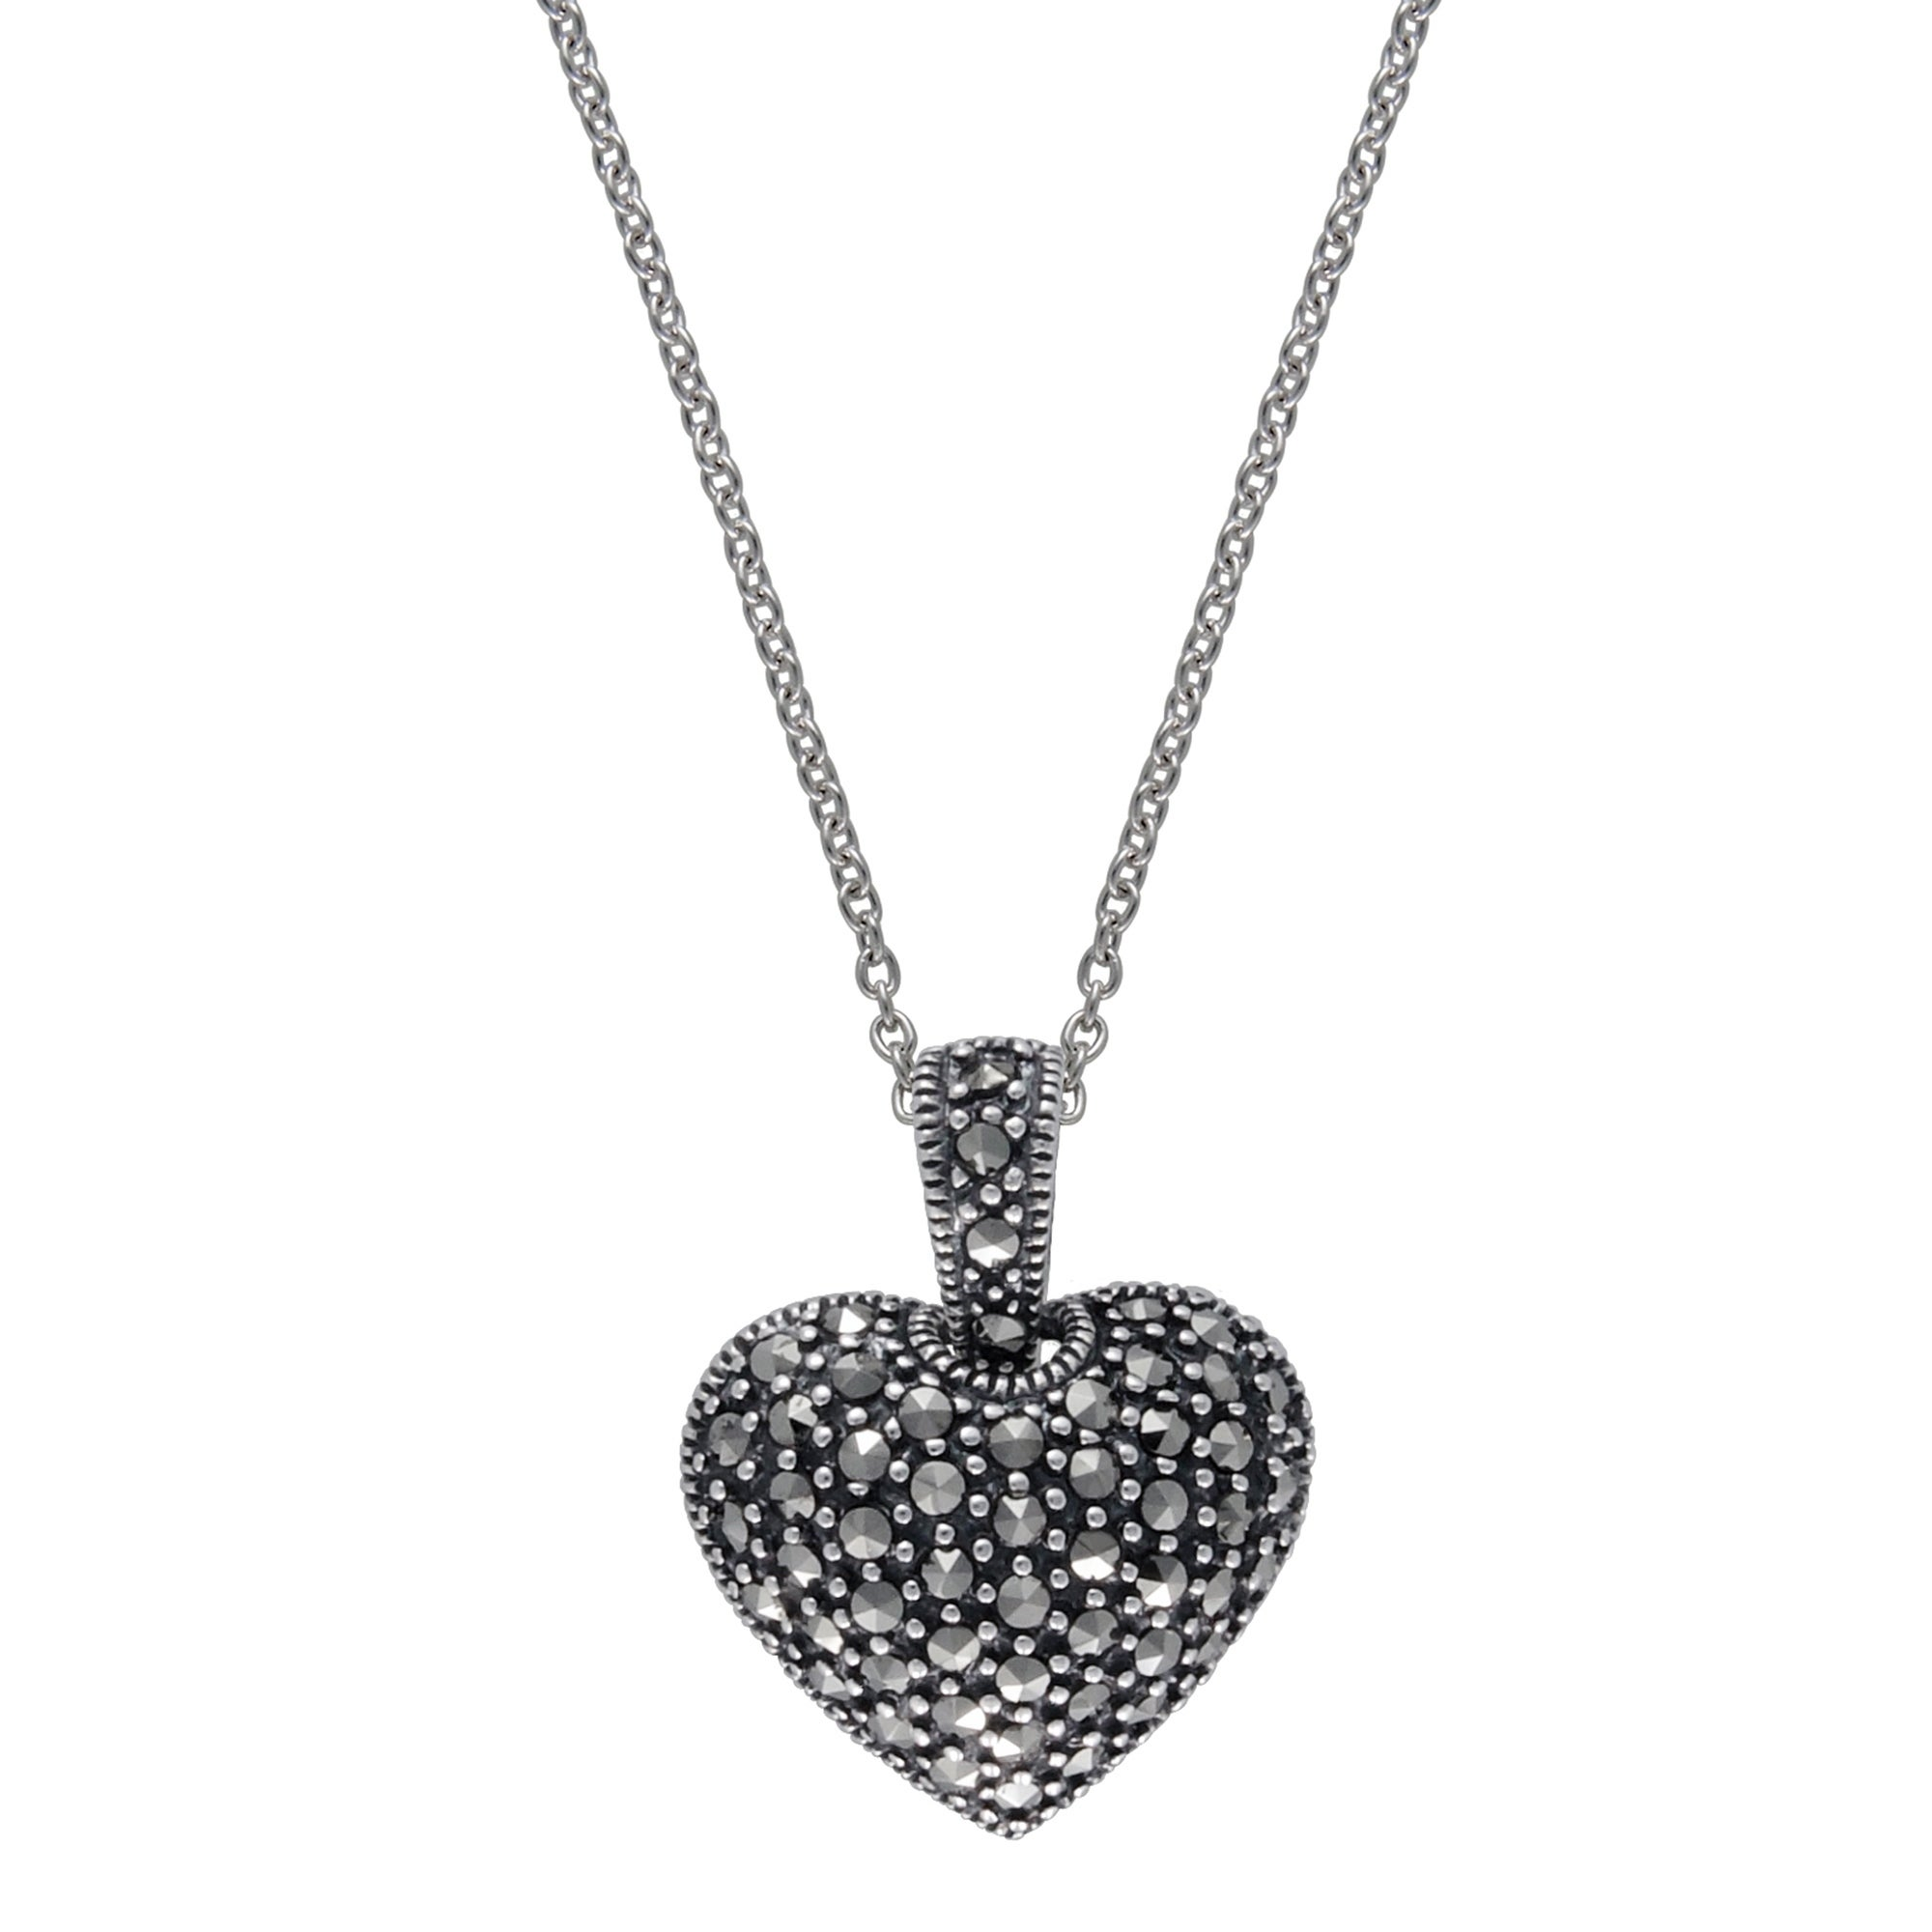 """Details about  /925 Sterling Silver Marcasite Cross Chain Pendant Necklace Size 18/"""" Ct 0.6"""